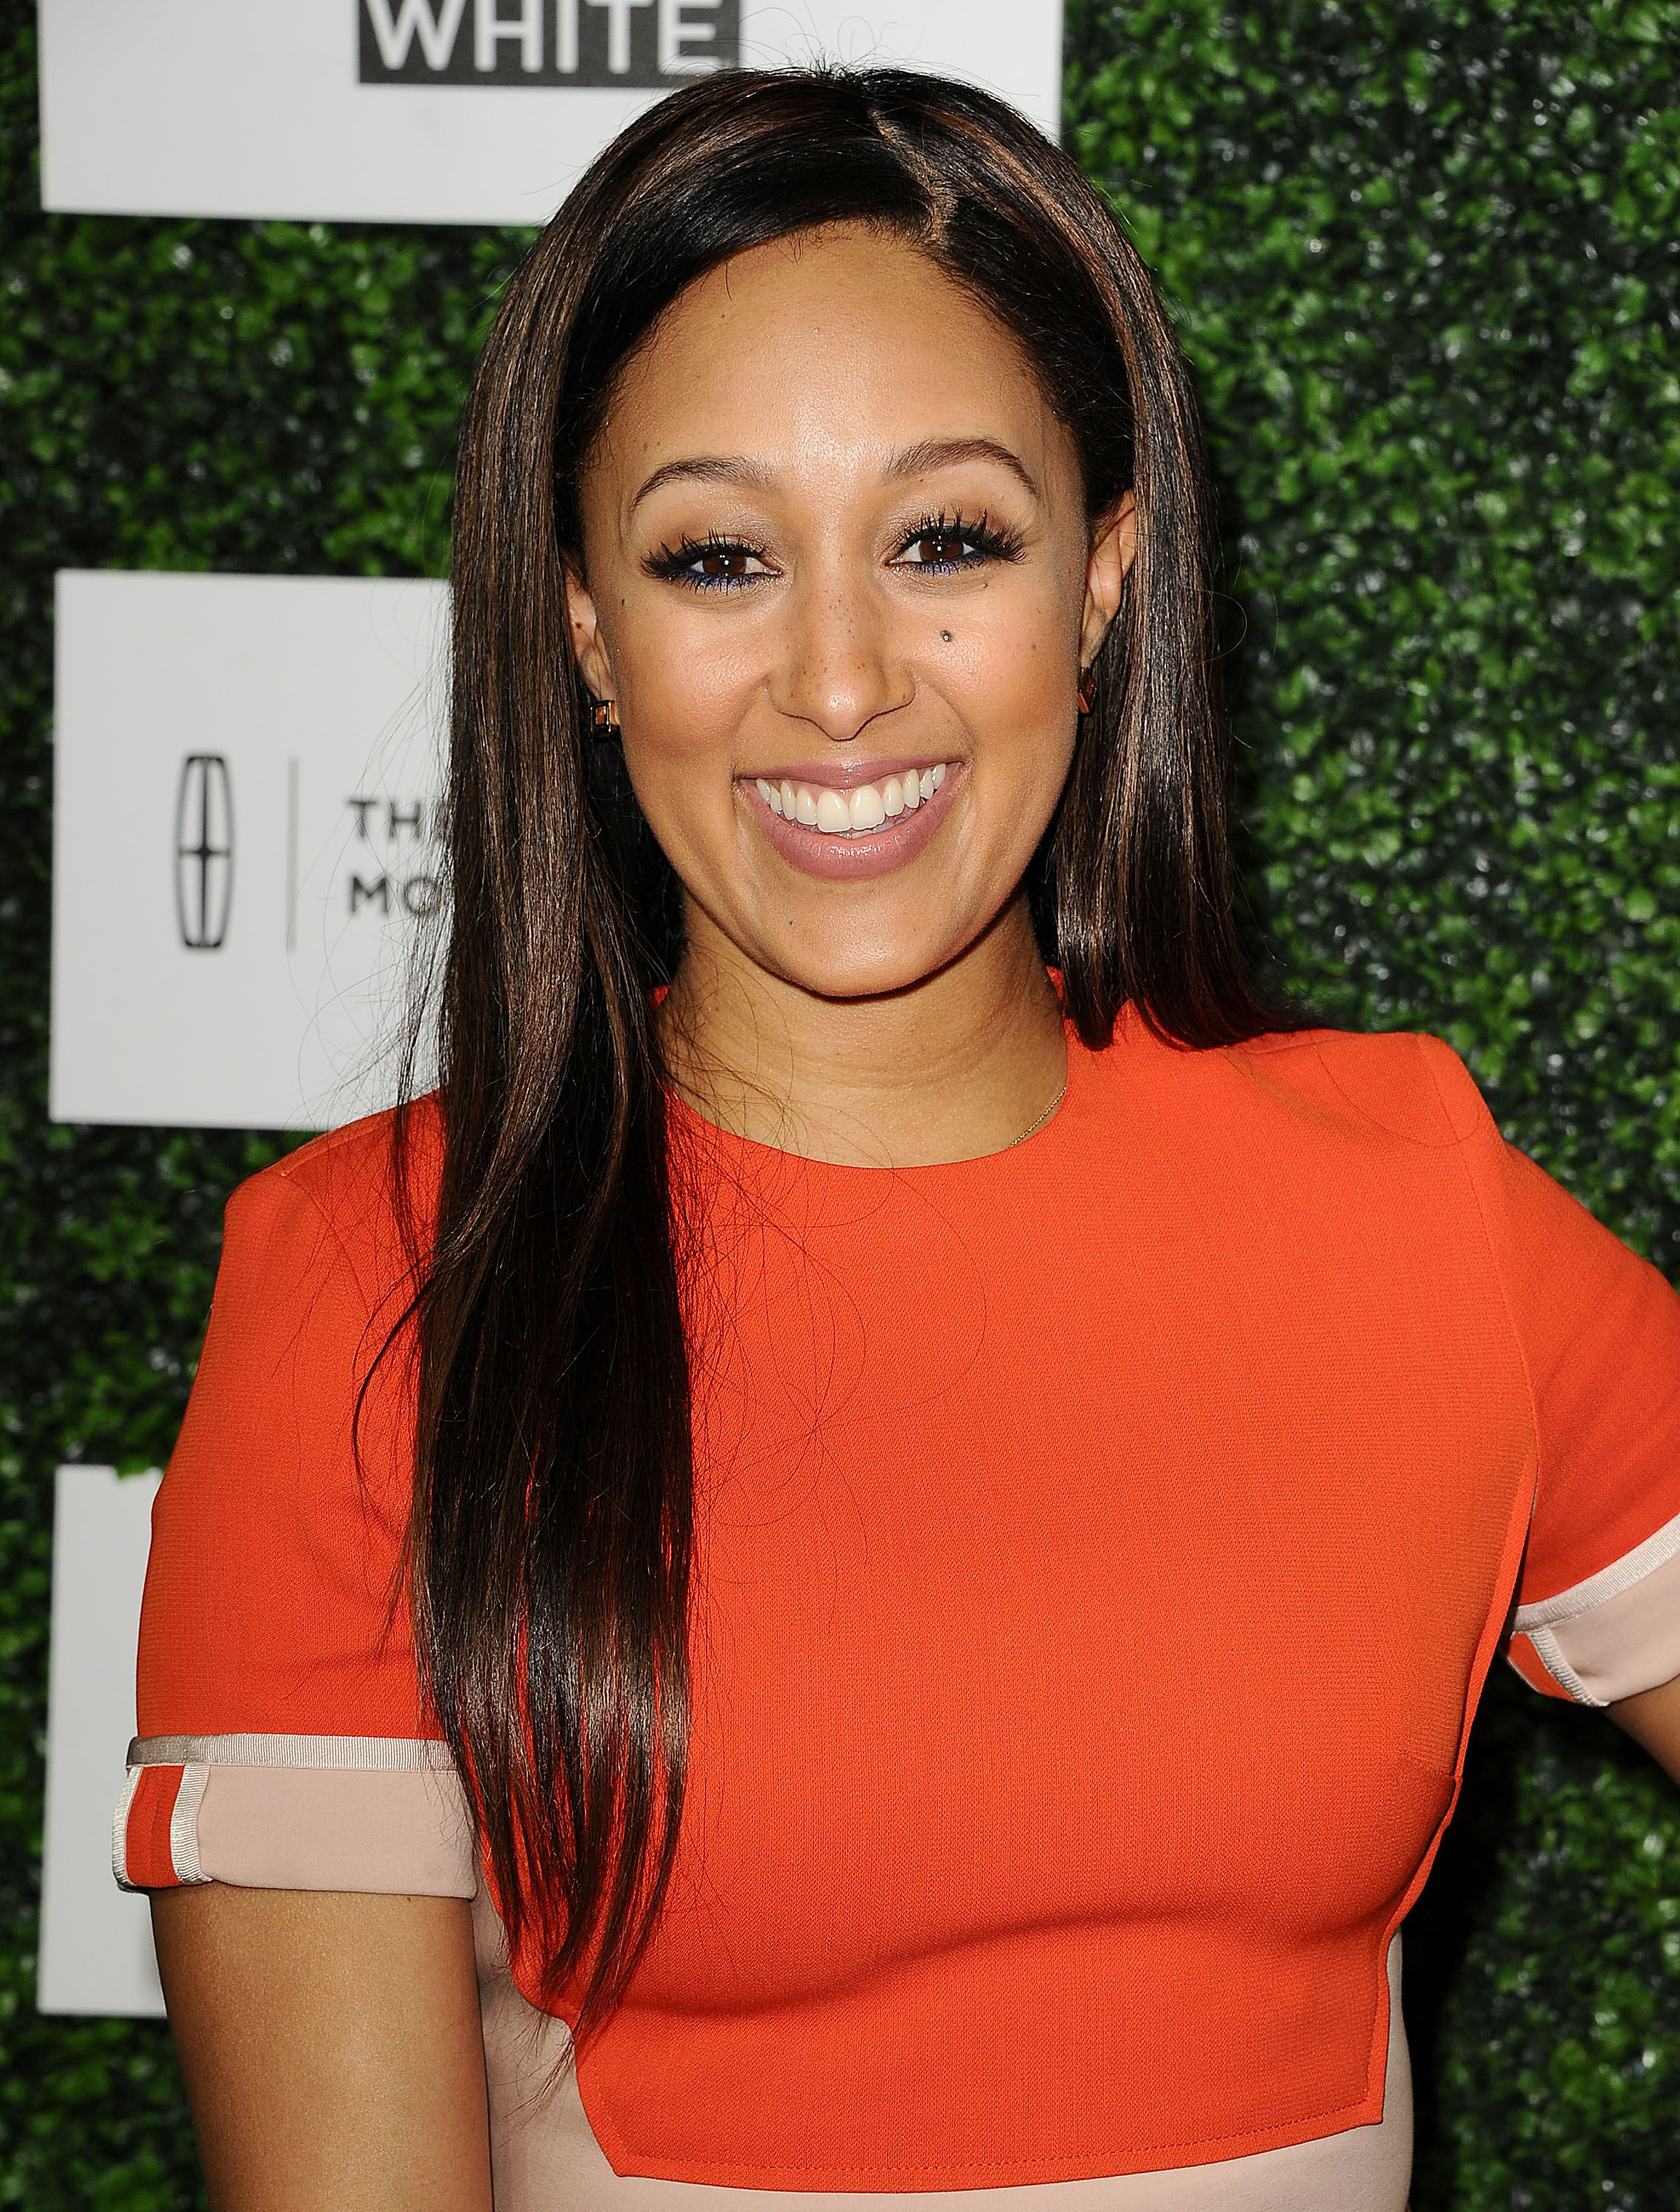 Hacked Tamera Mowry nudes (15 images), Pussy